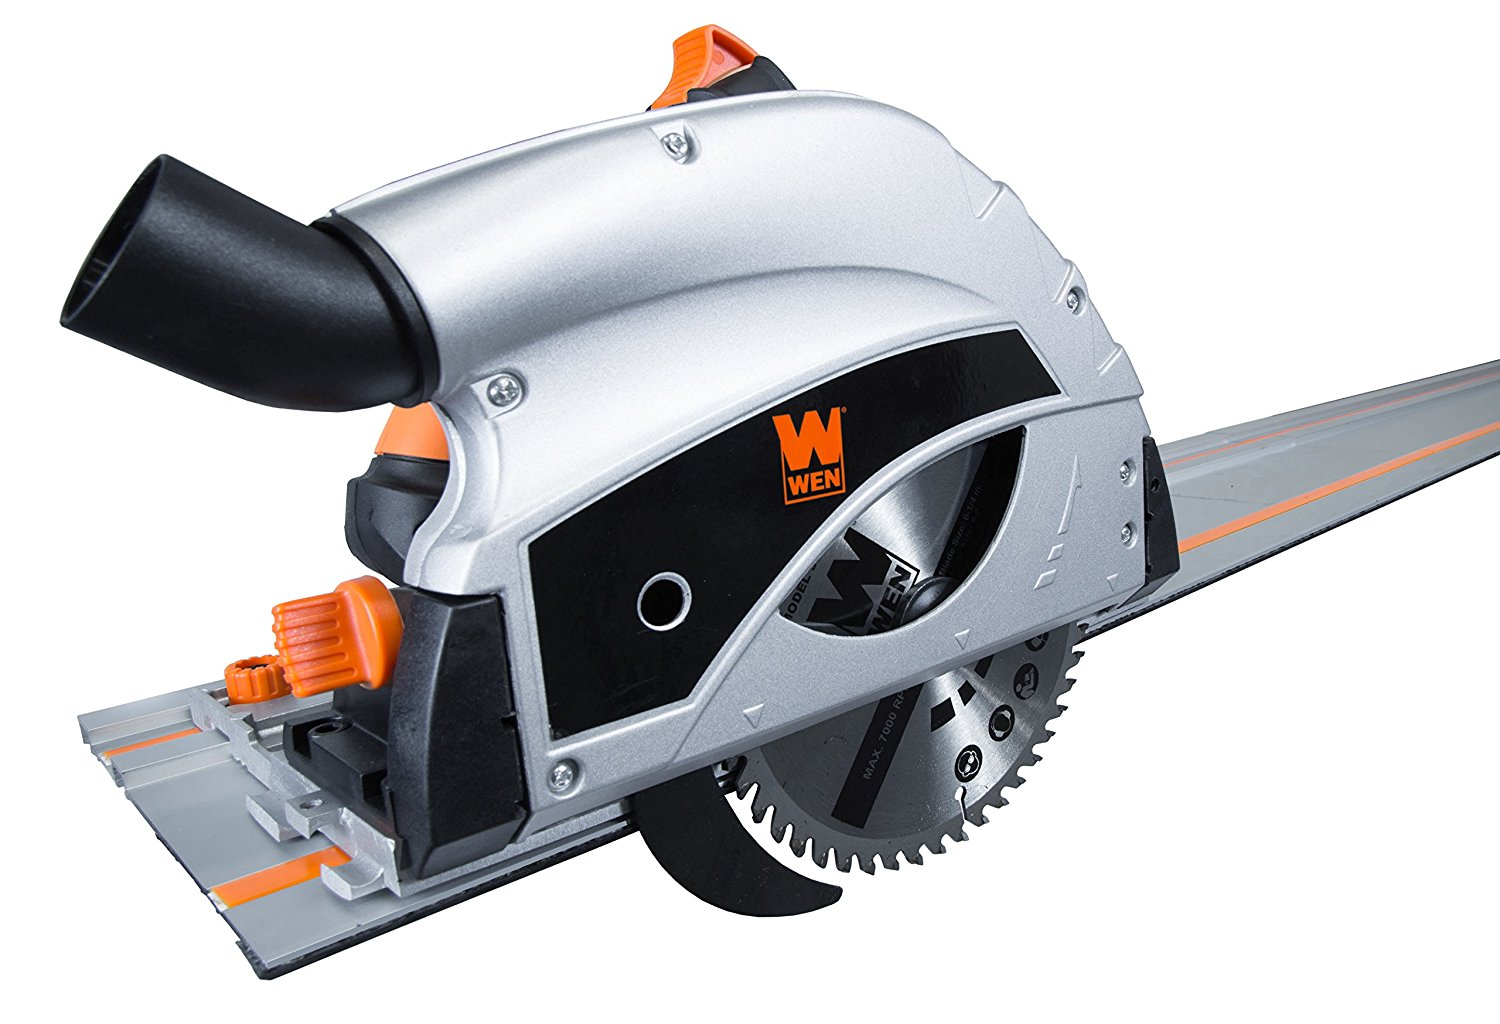 Cheap Plunge Circular Saw, find Plunge Circular Saw deals on